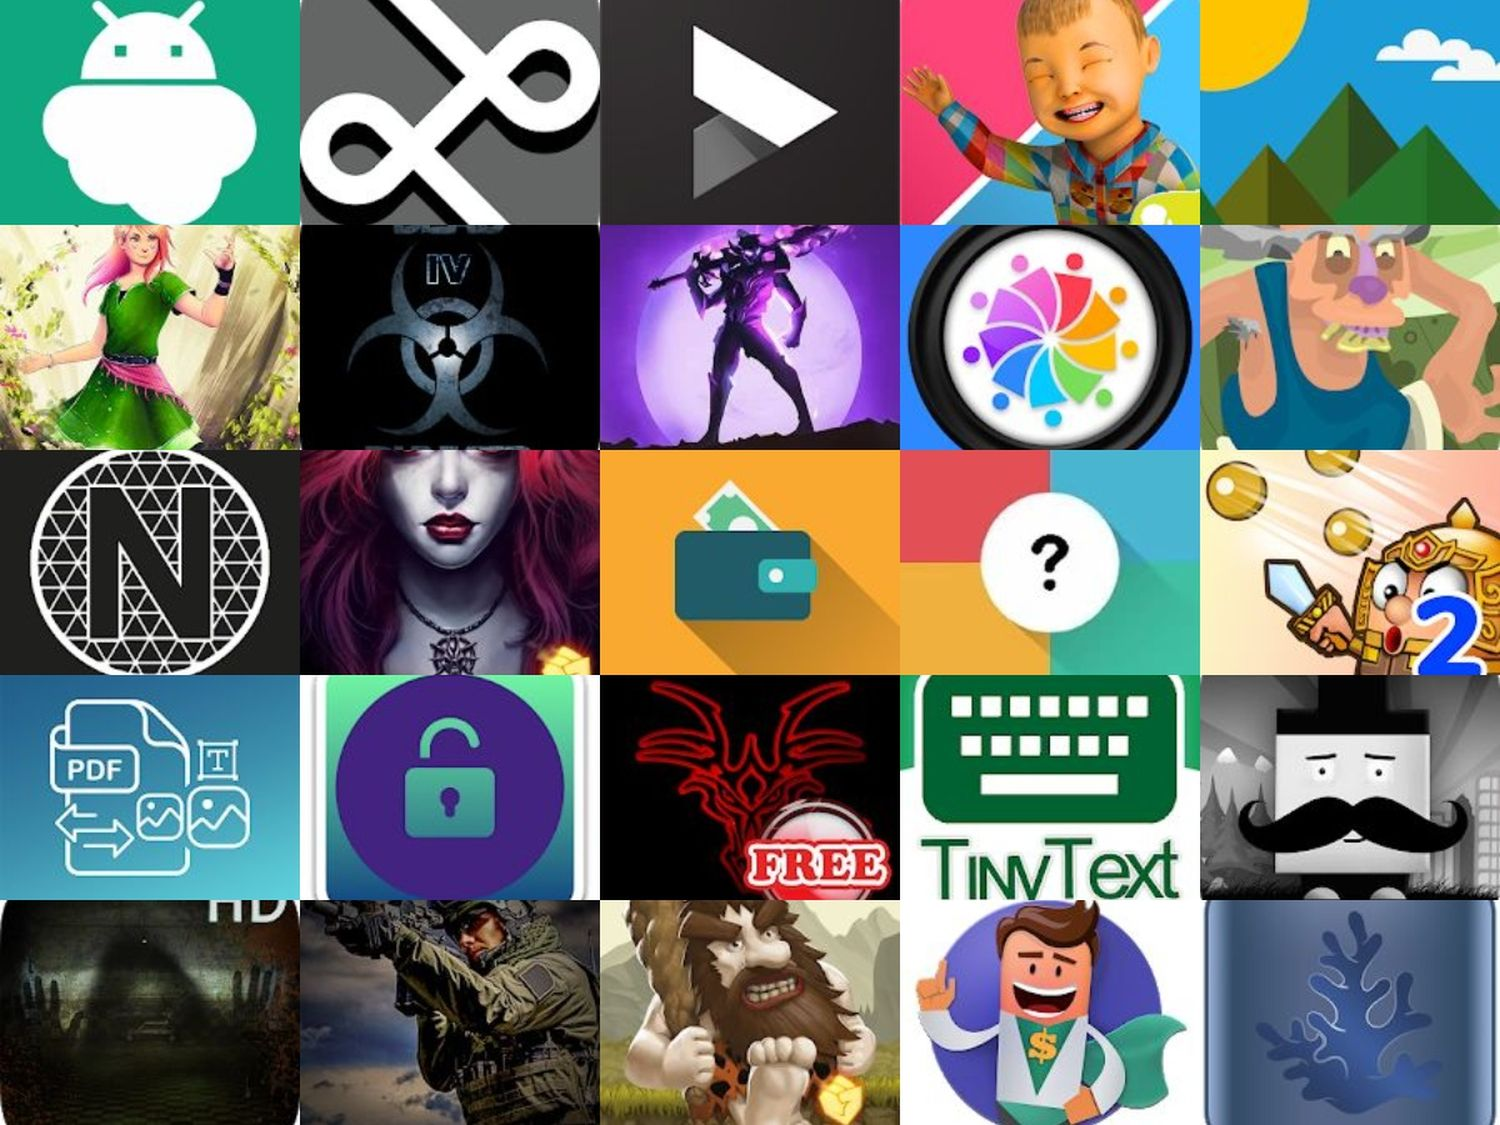 apps 02.02.2021